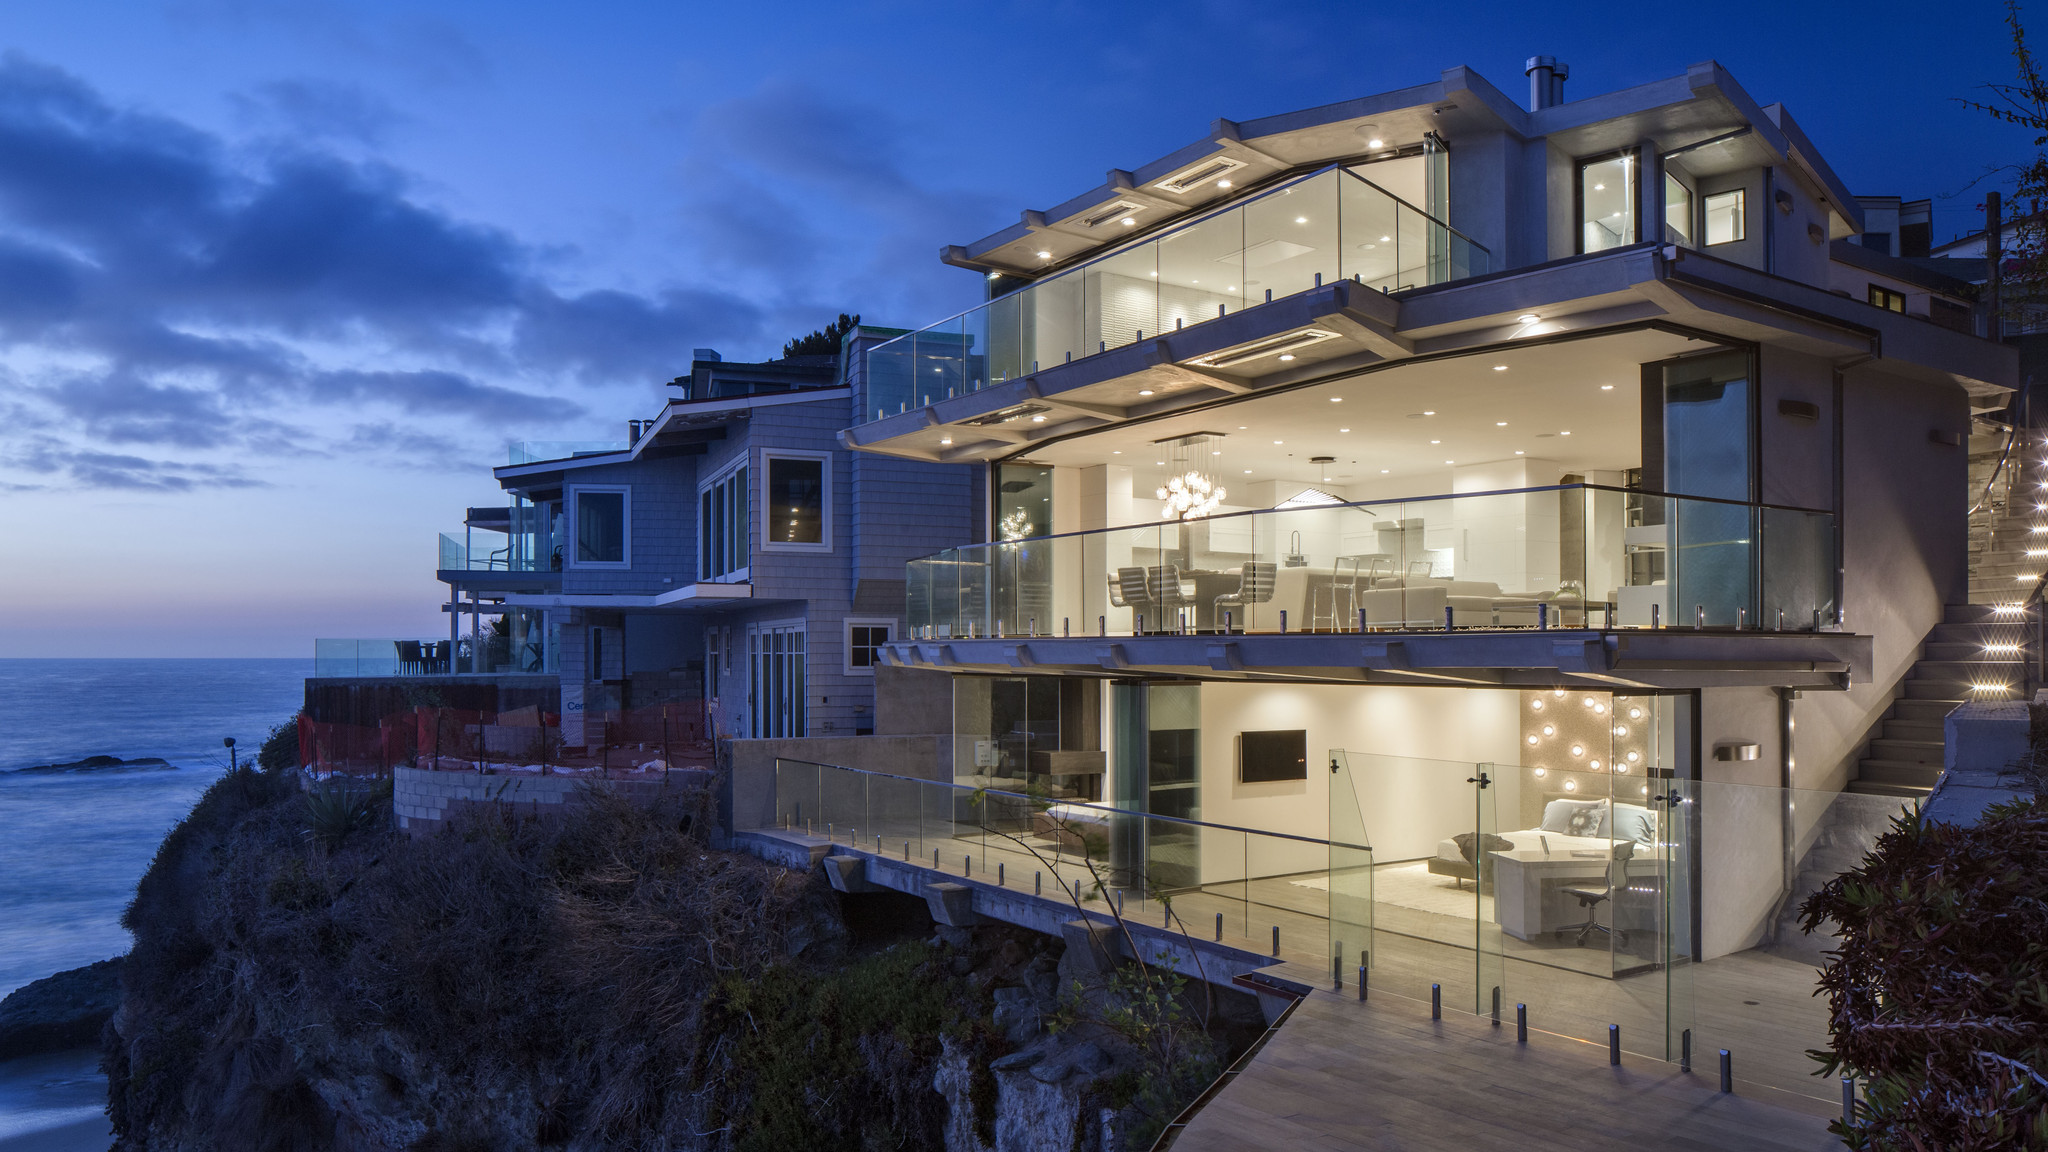 Home of the day living on the edge in laguna beach la times for Laguna beach house prices